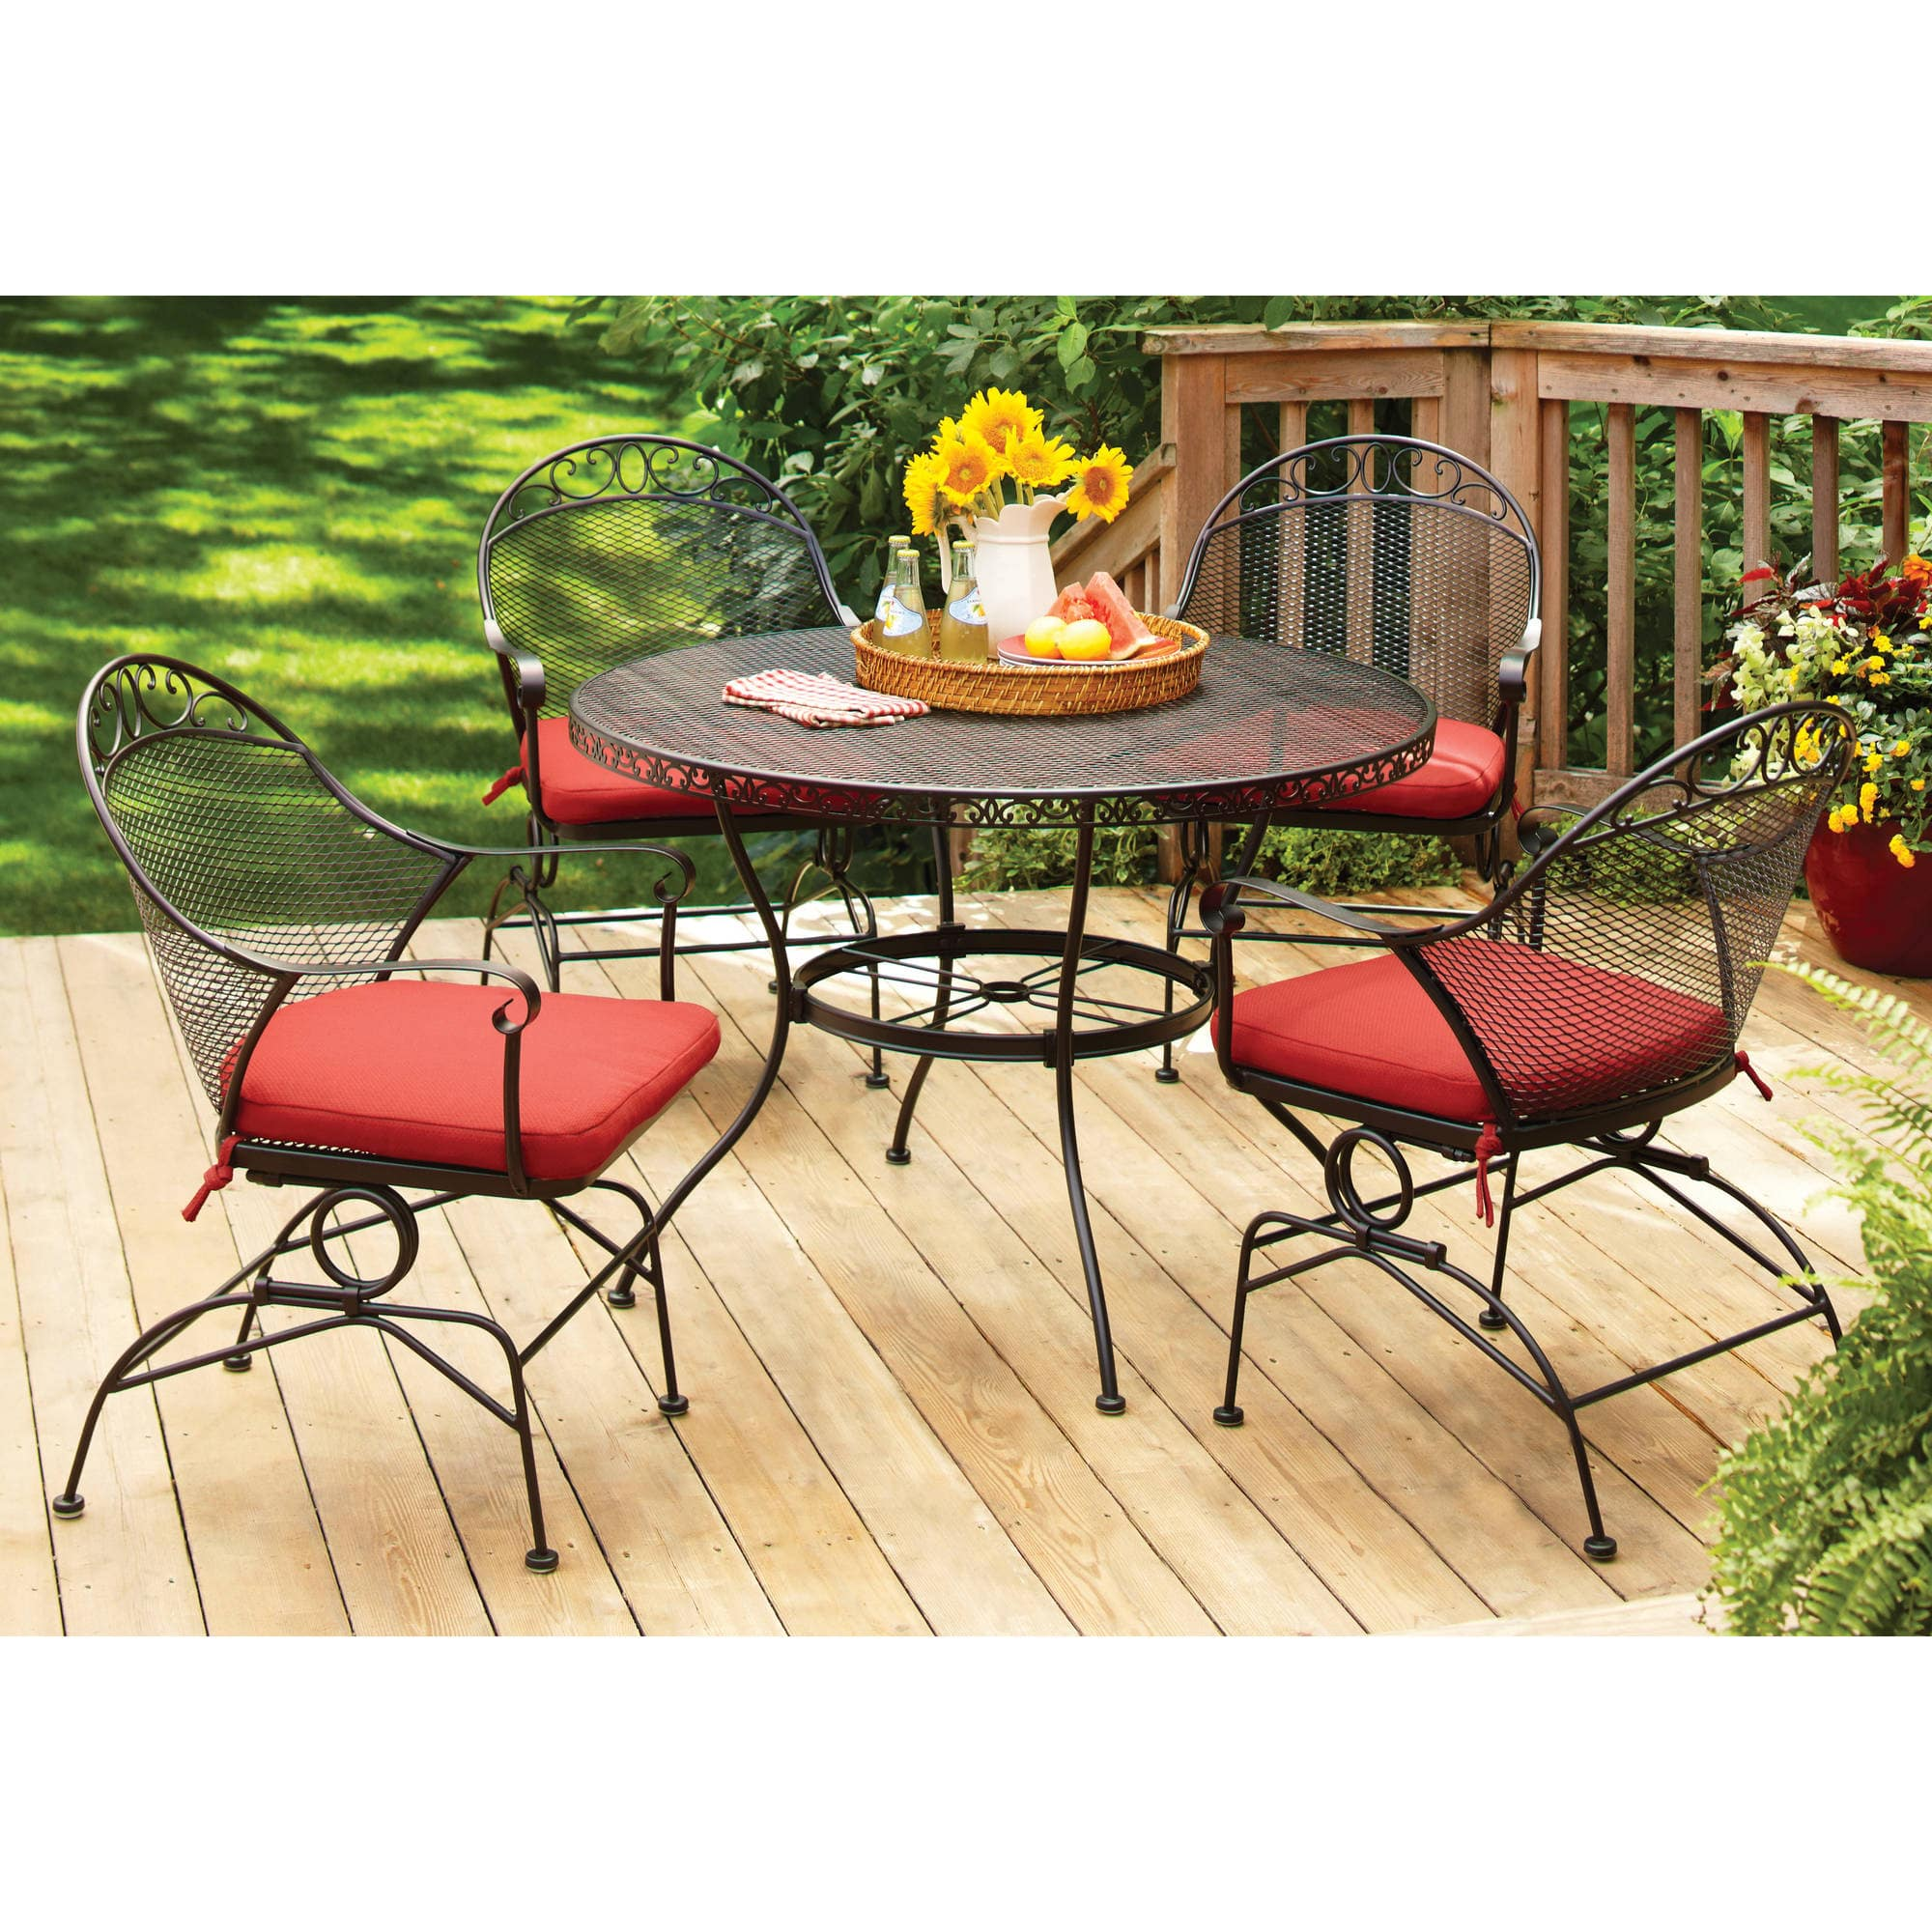 Fabulous Walmart Better Homes and Gardens Clayton Ct Piece Dining Set Red